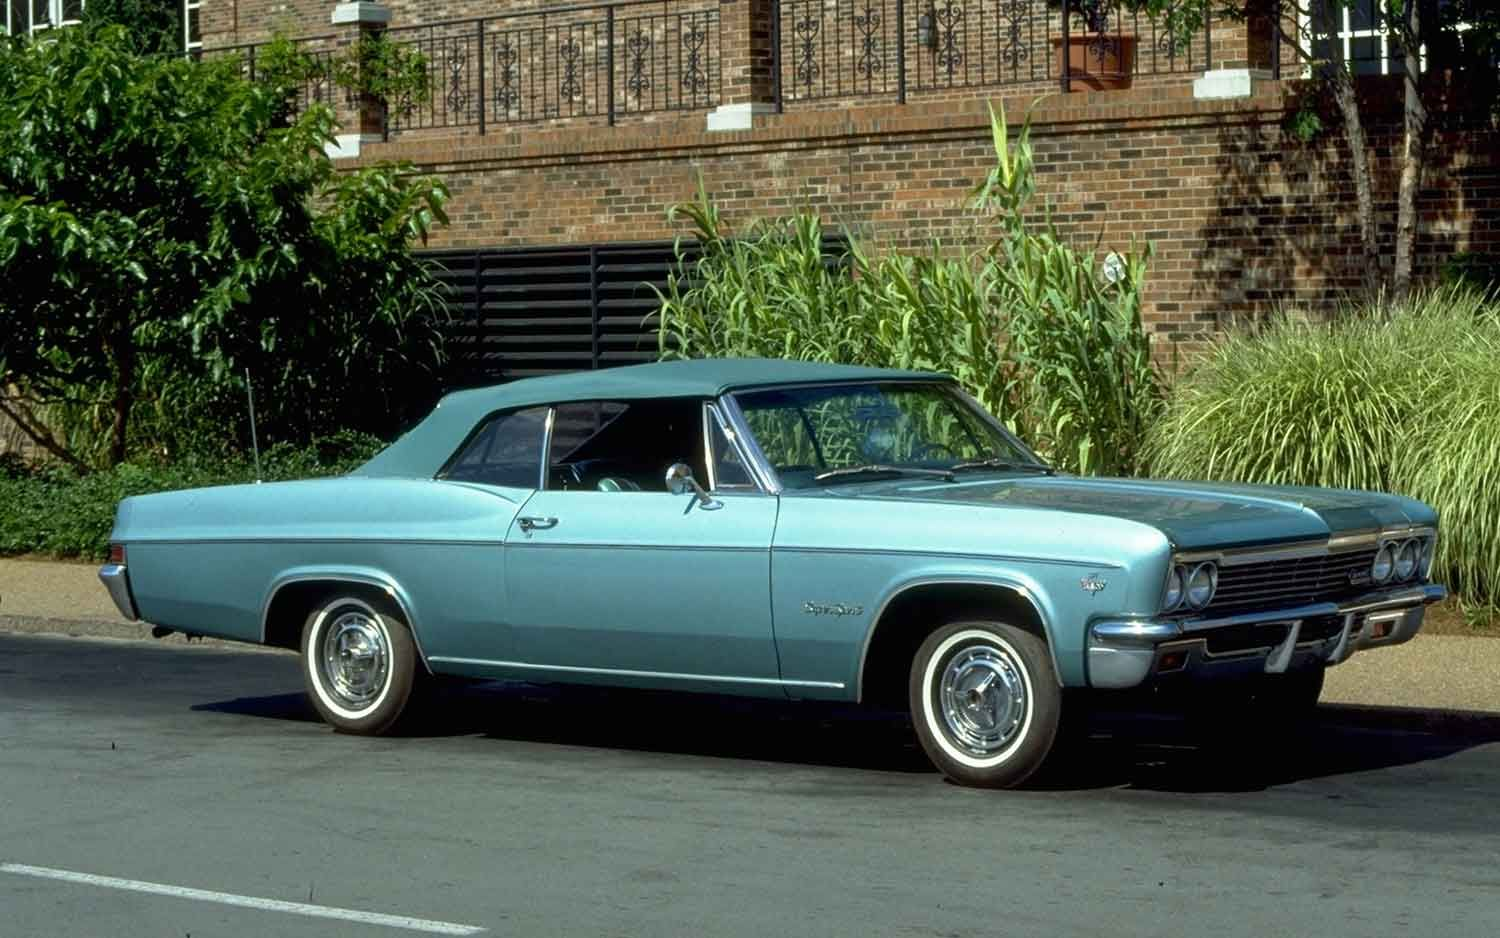 1966 chevrolet impala ss drop top